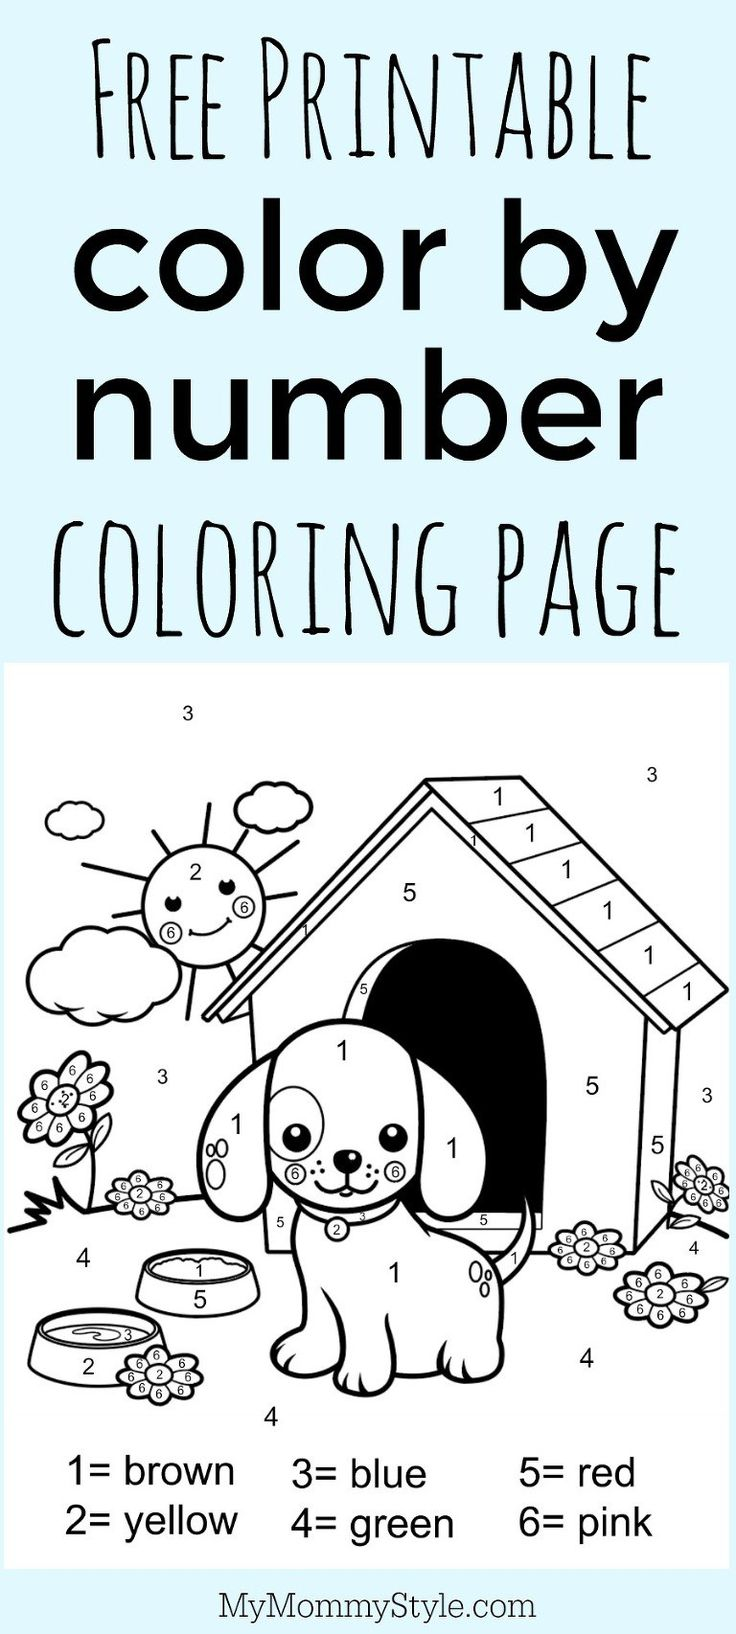 Colors for learning free printable learning colors coloring pages are - Color By Number Coloring Page Free Printable